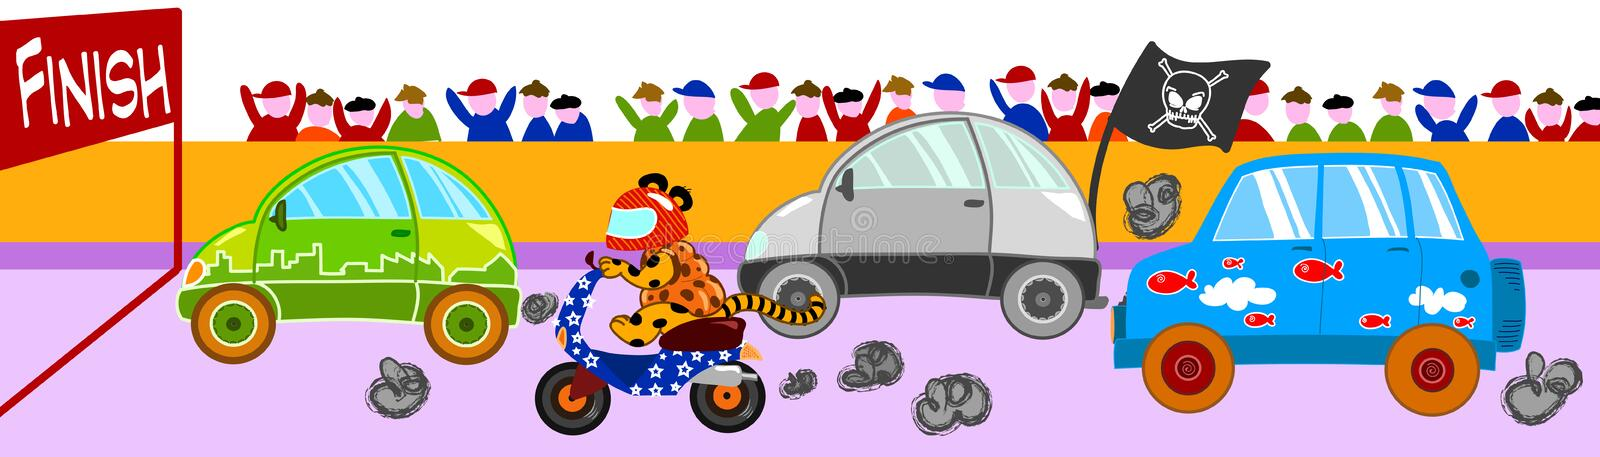 Funny car race. A funny car race with all sort of vehicles. Vectorial illustration